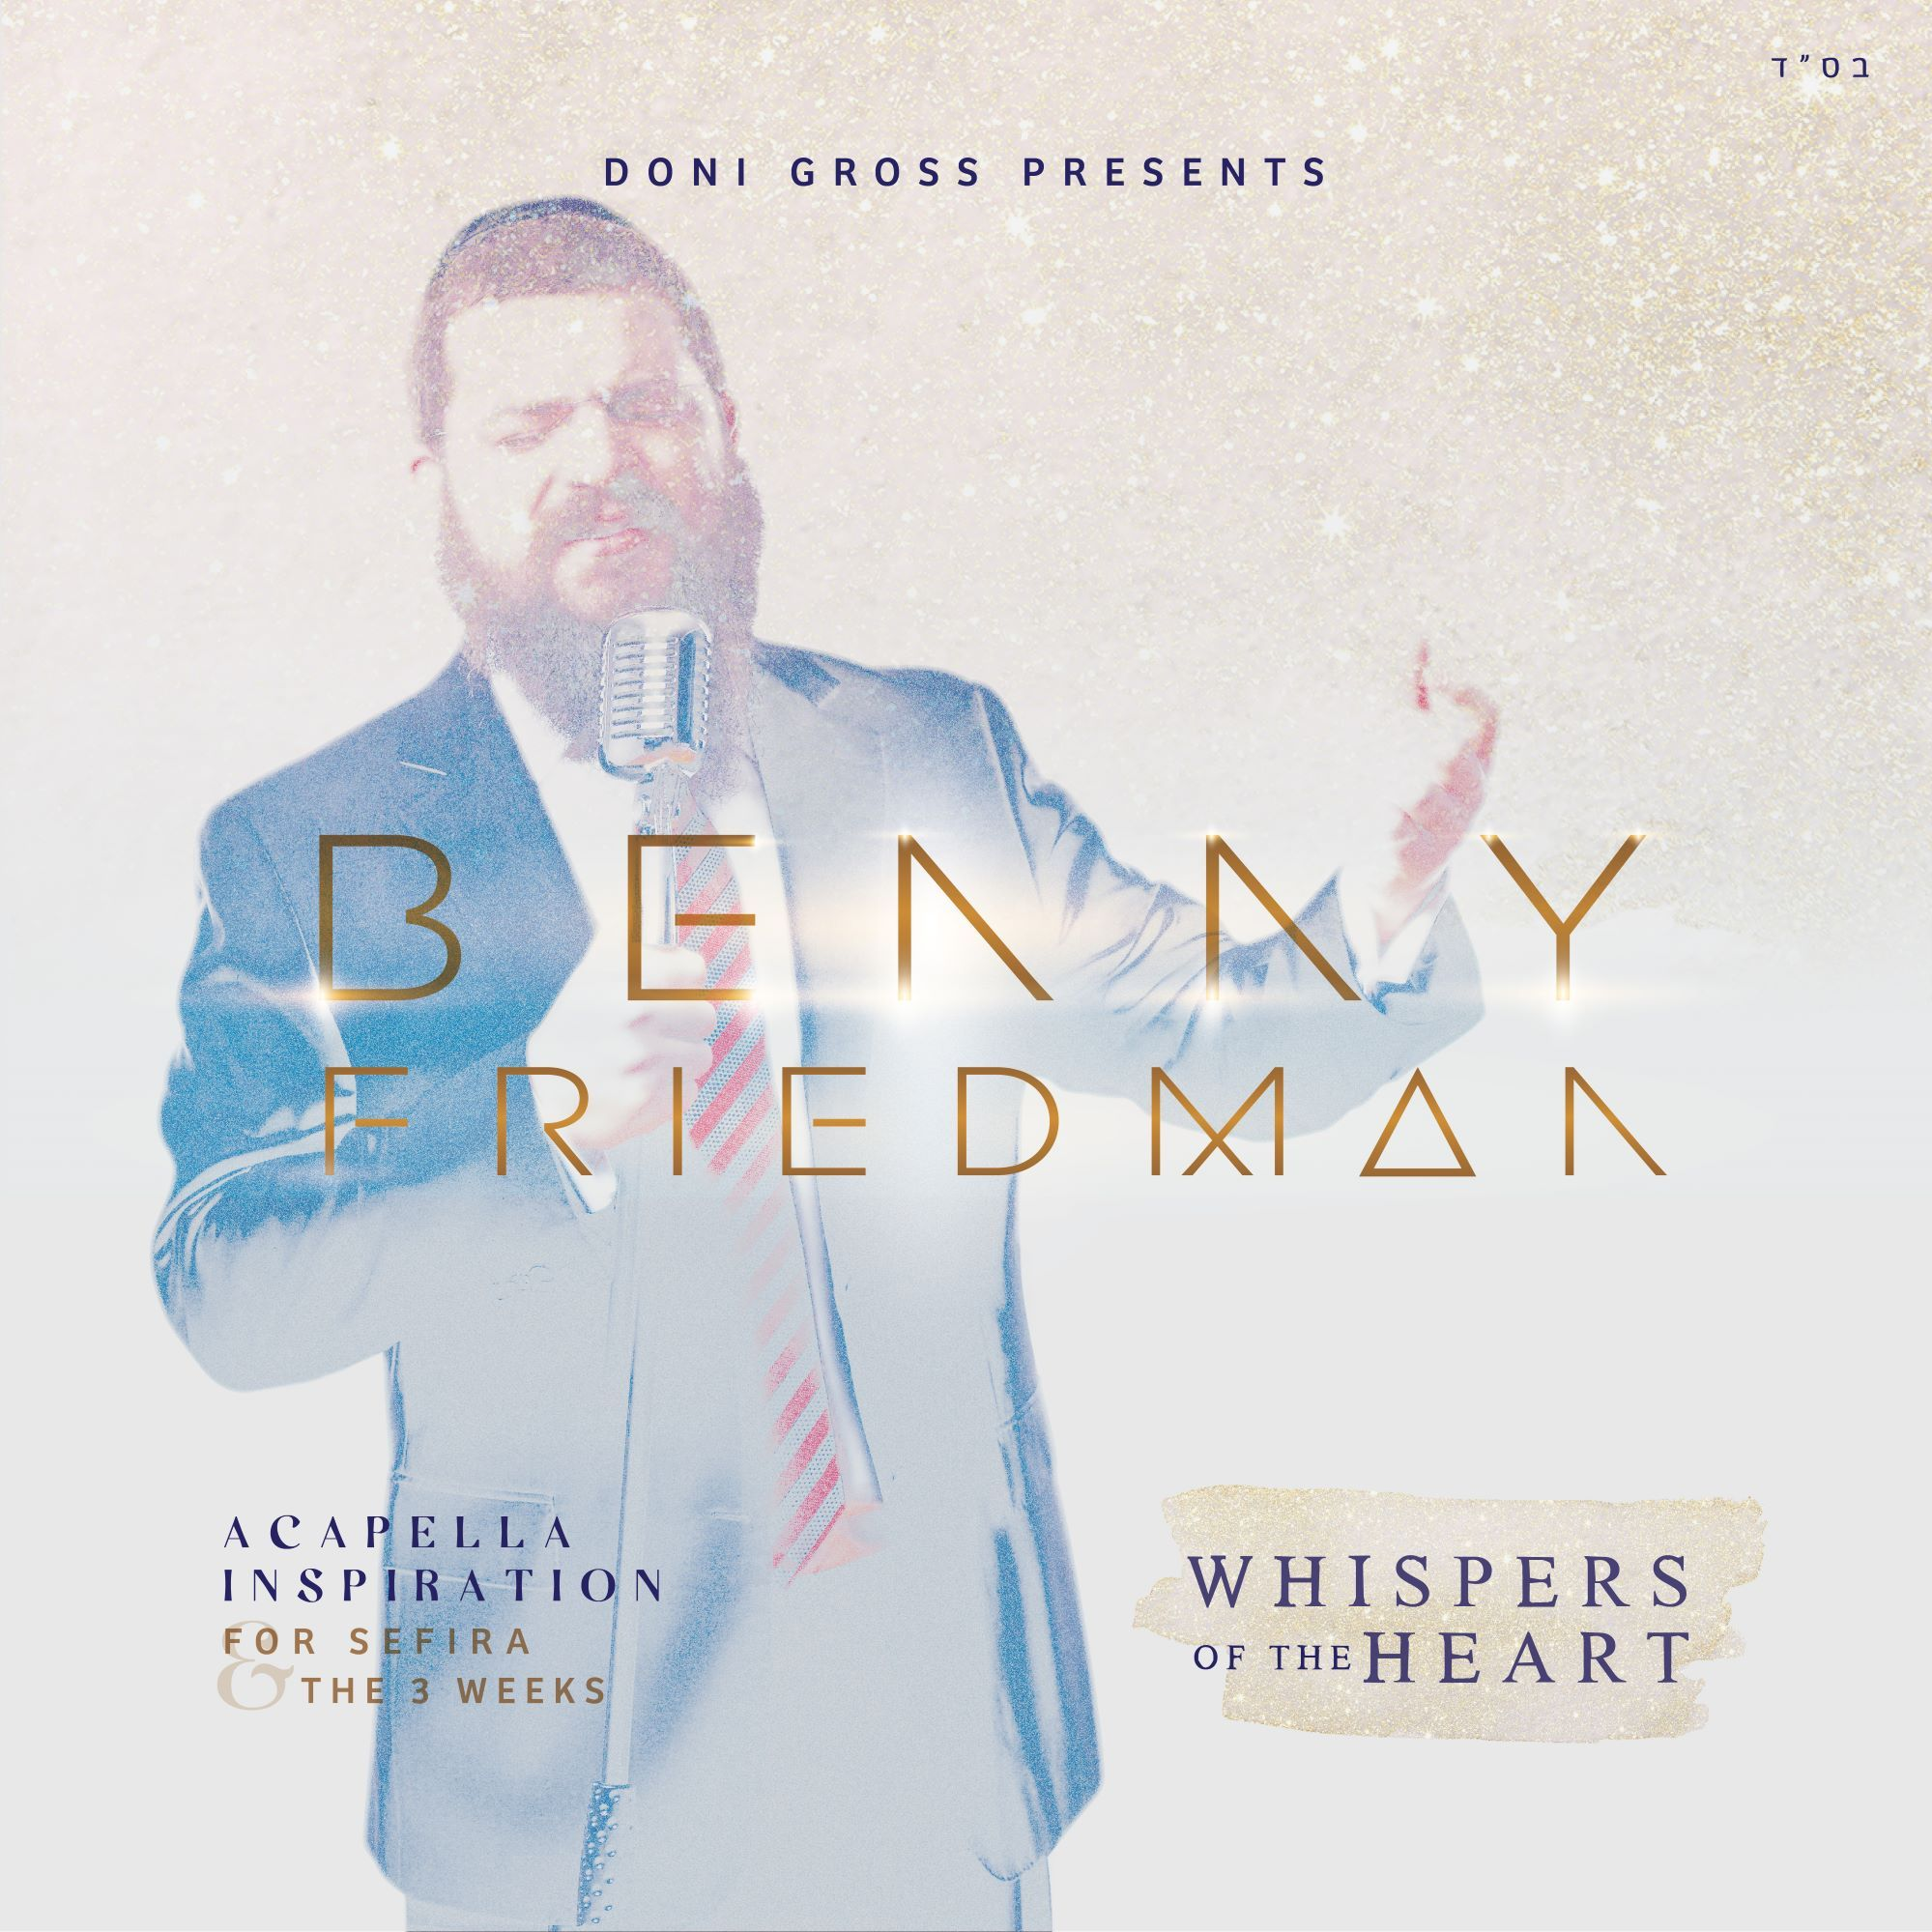 Benny Friedman - Whispers Of The Heart (Acapella Inspiration)